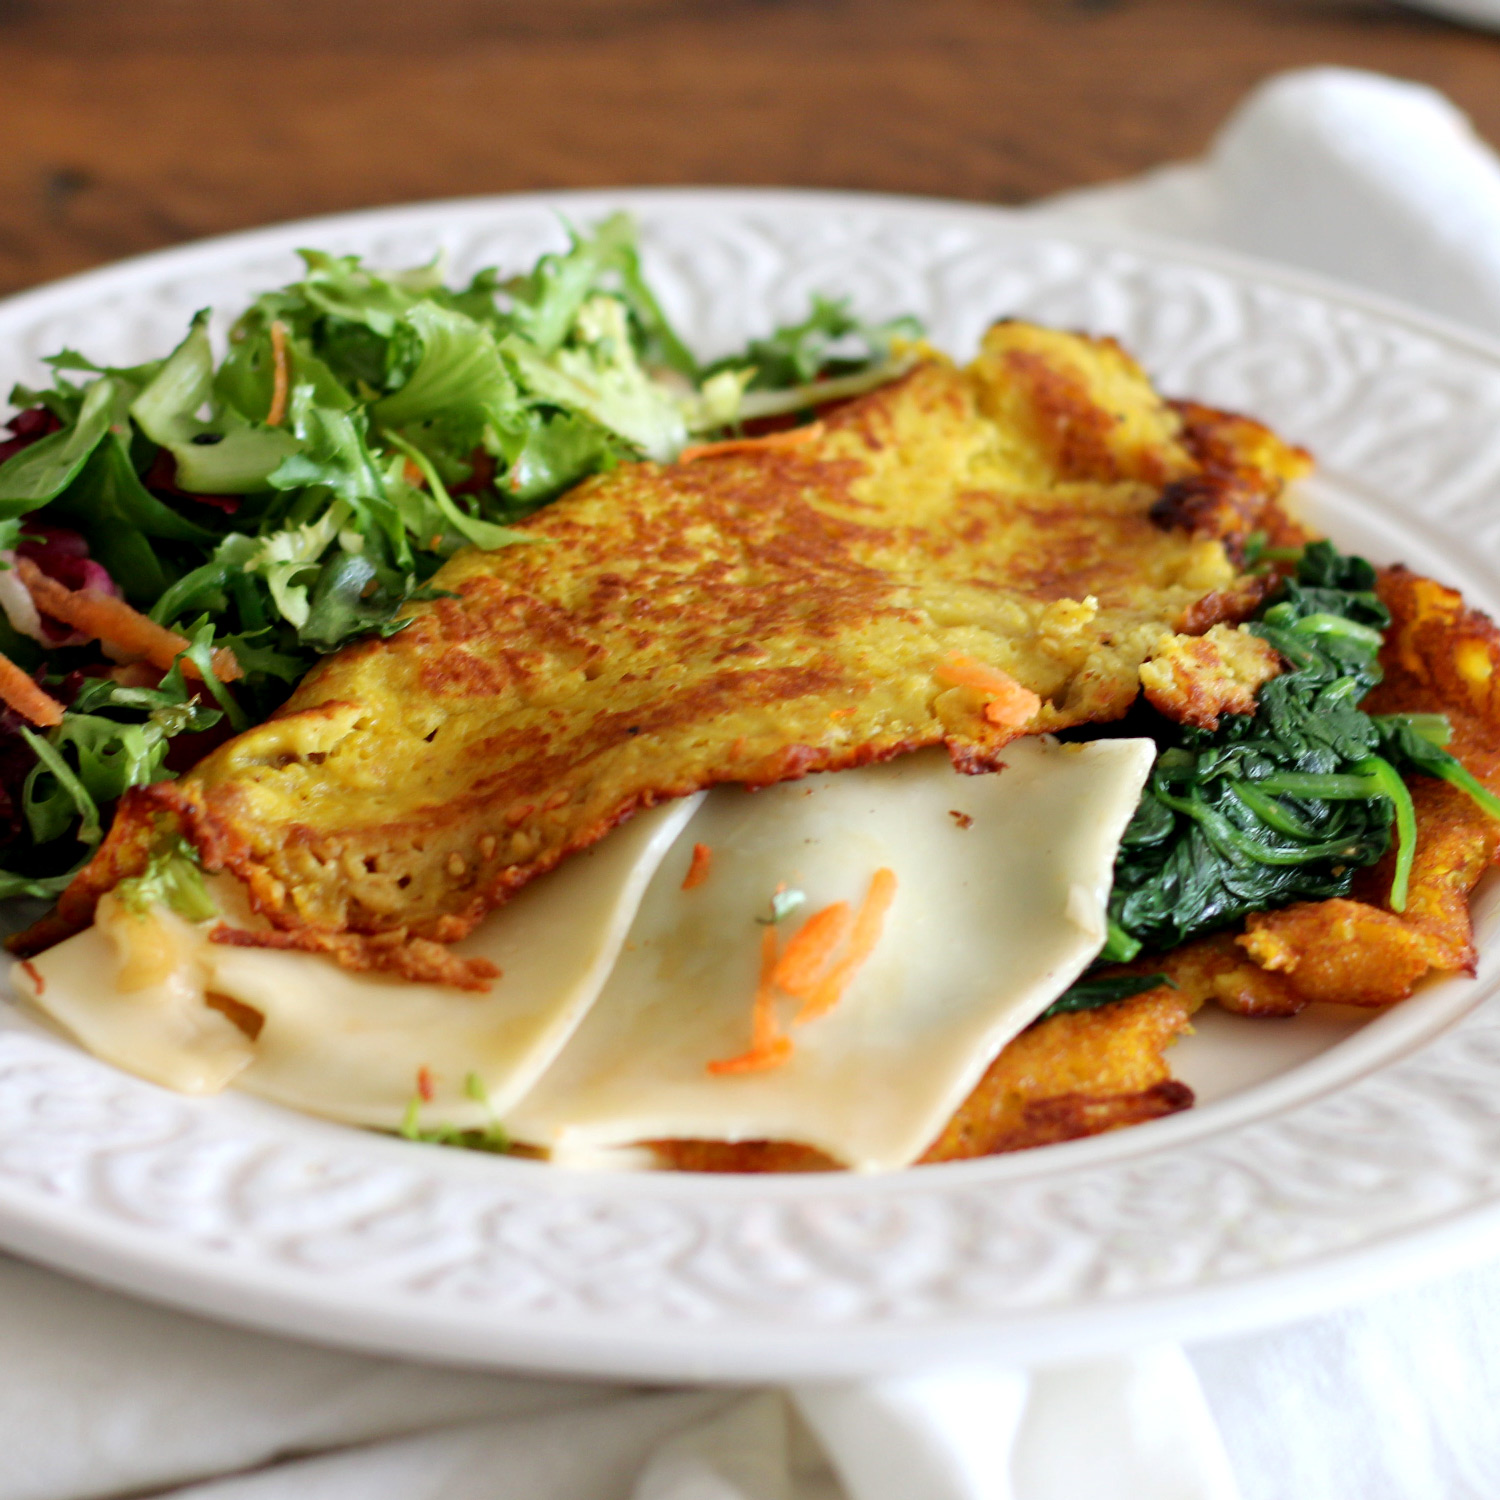 Vegan cheese omelette with Spinach